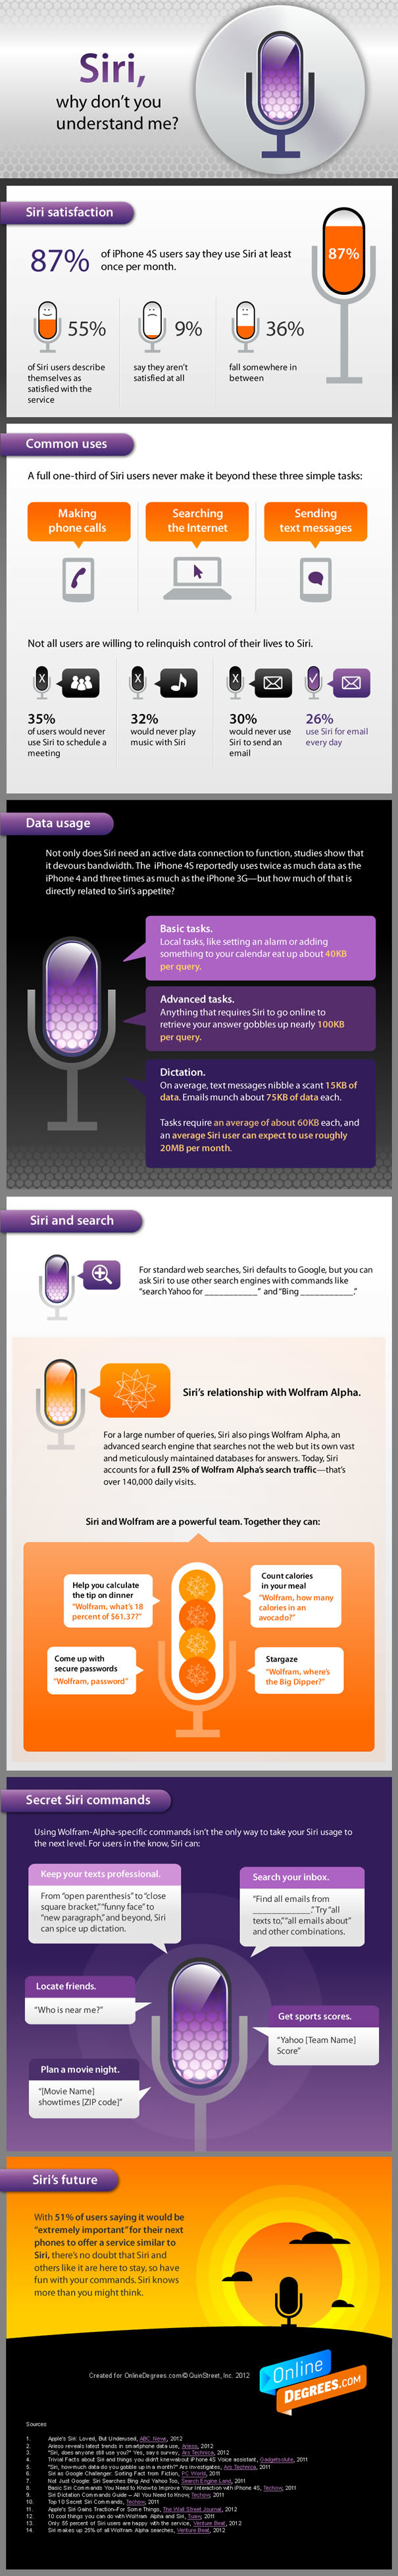 siri why dont you understand #infographic